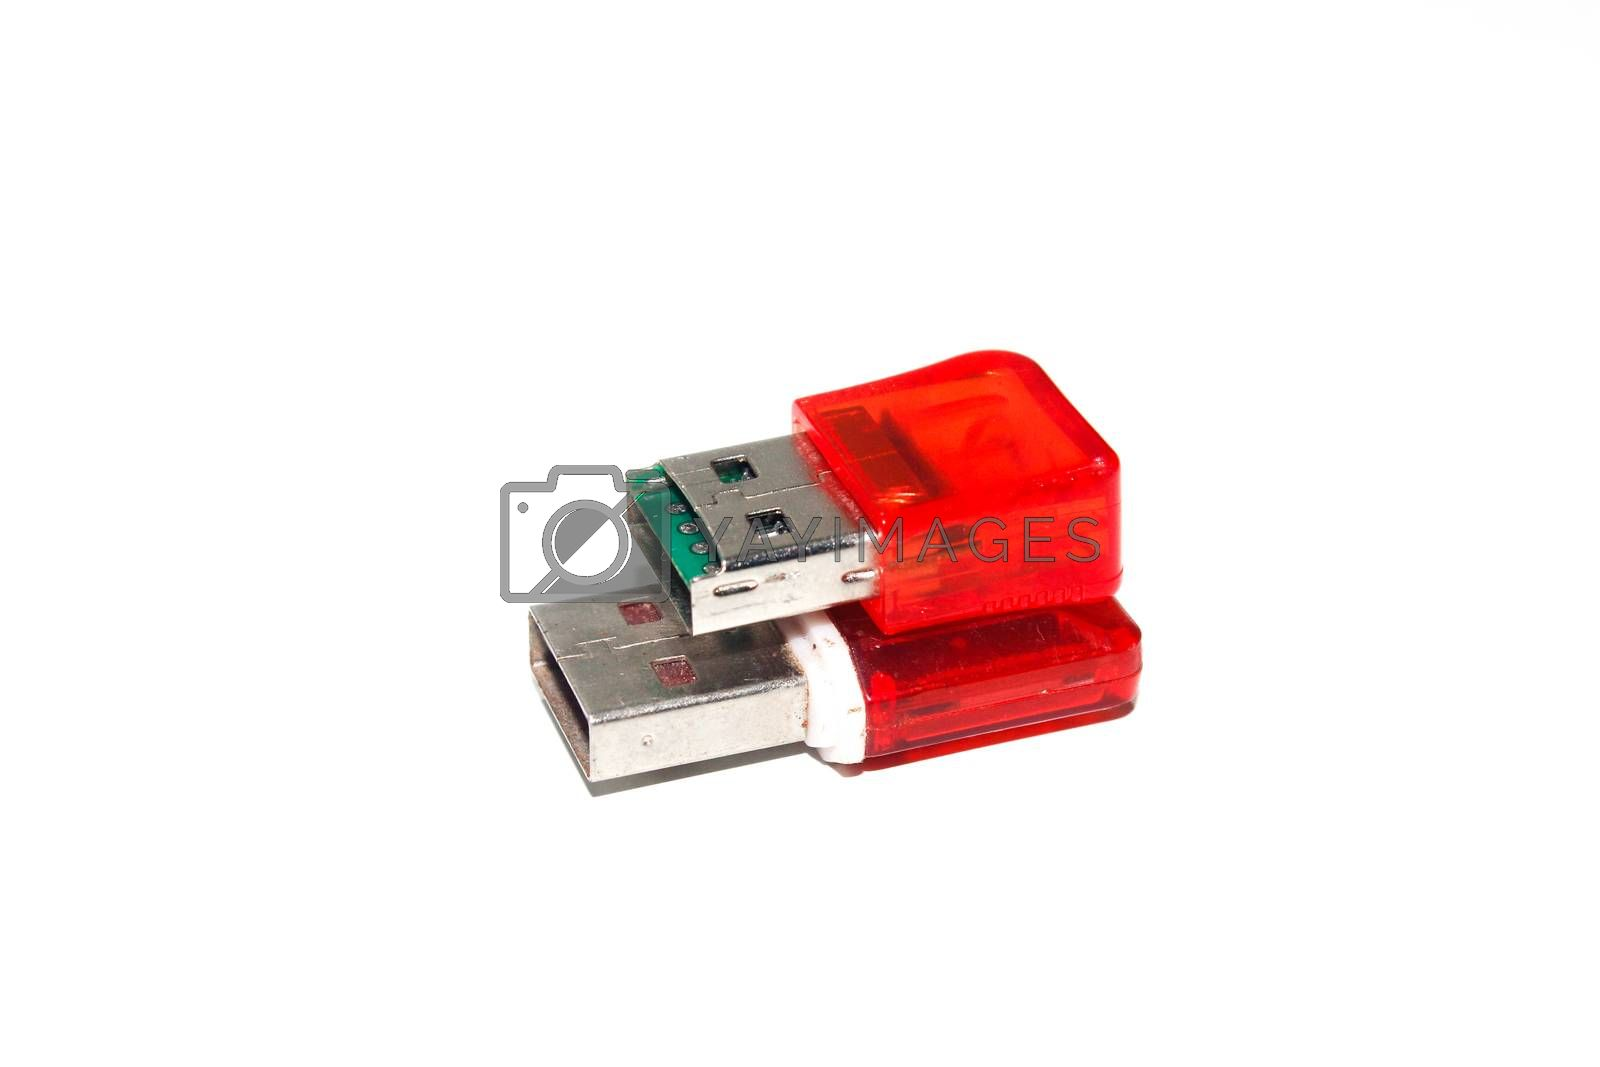 A picture of pen drive on white background